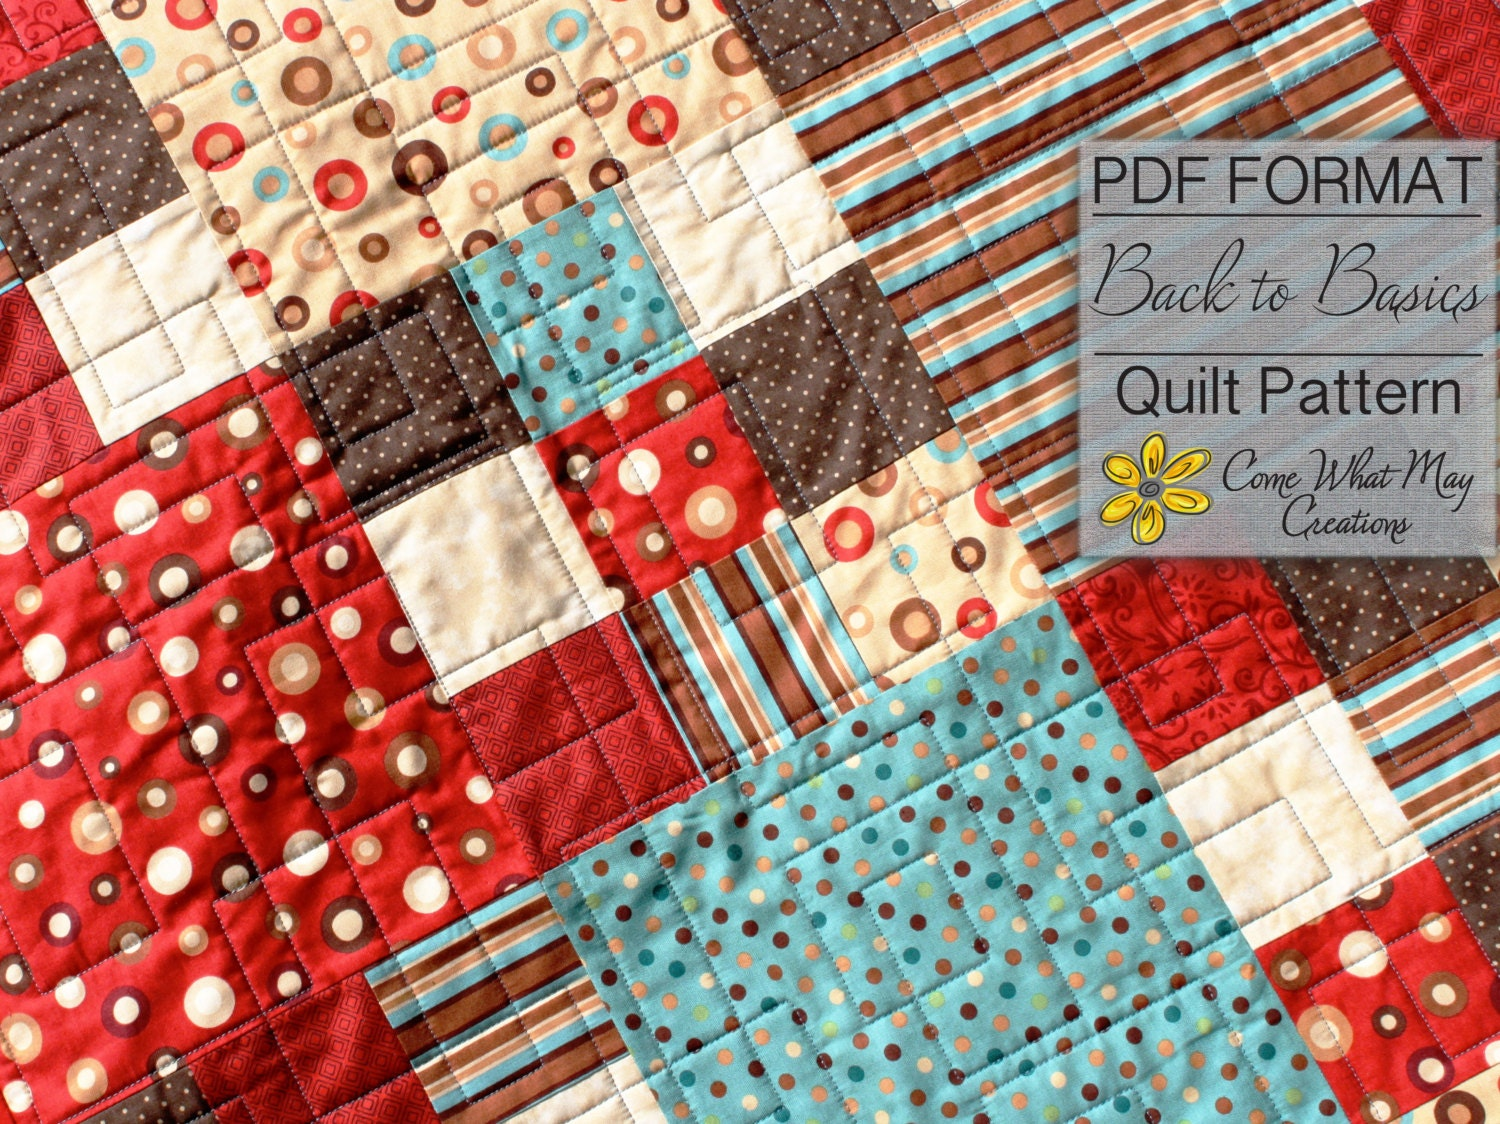 Quilt Pattern For 9 Fat Quarters : Nine Patch Baby Quilt Pattern Fat Quarter Quilt Pattern Back